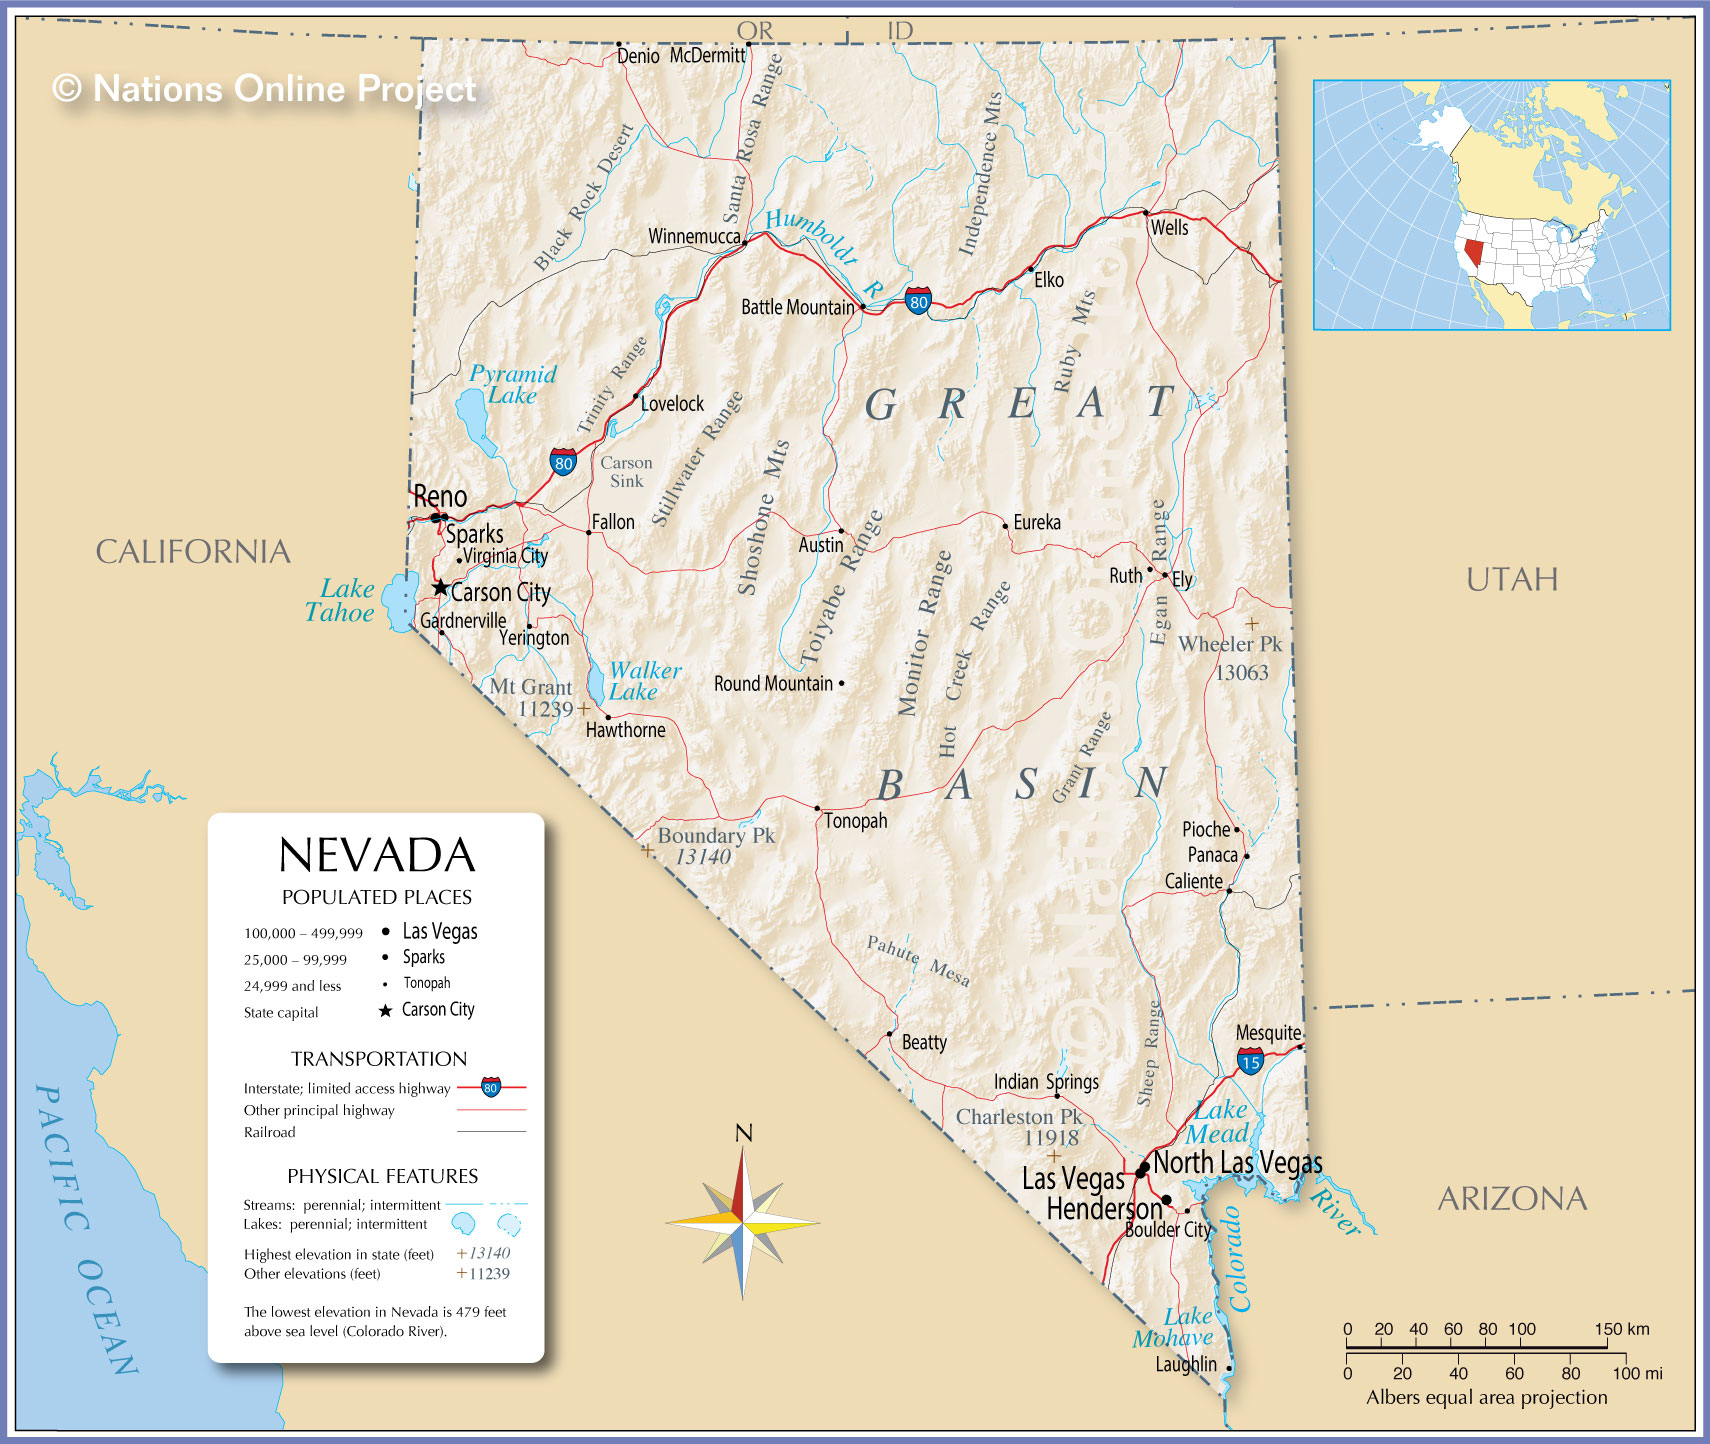 Reference Map of Nevada USA Nations line Project